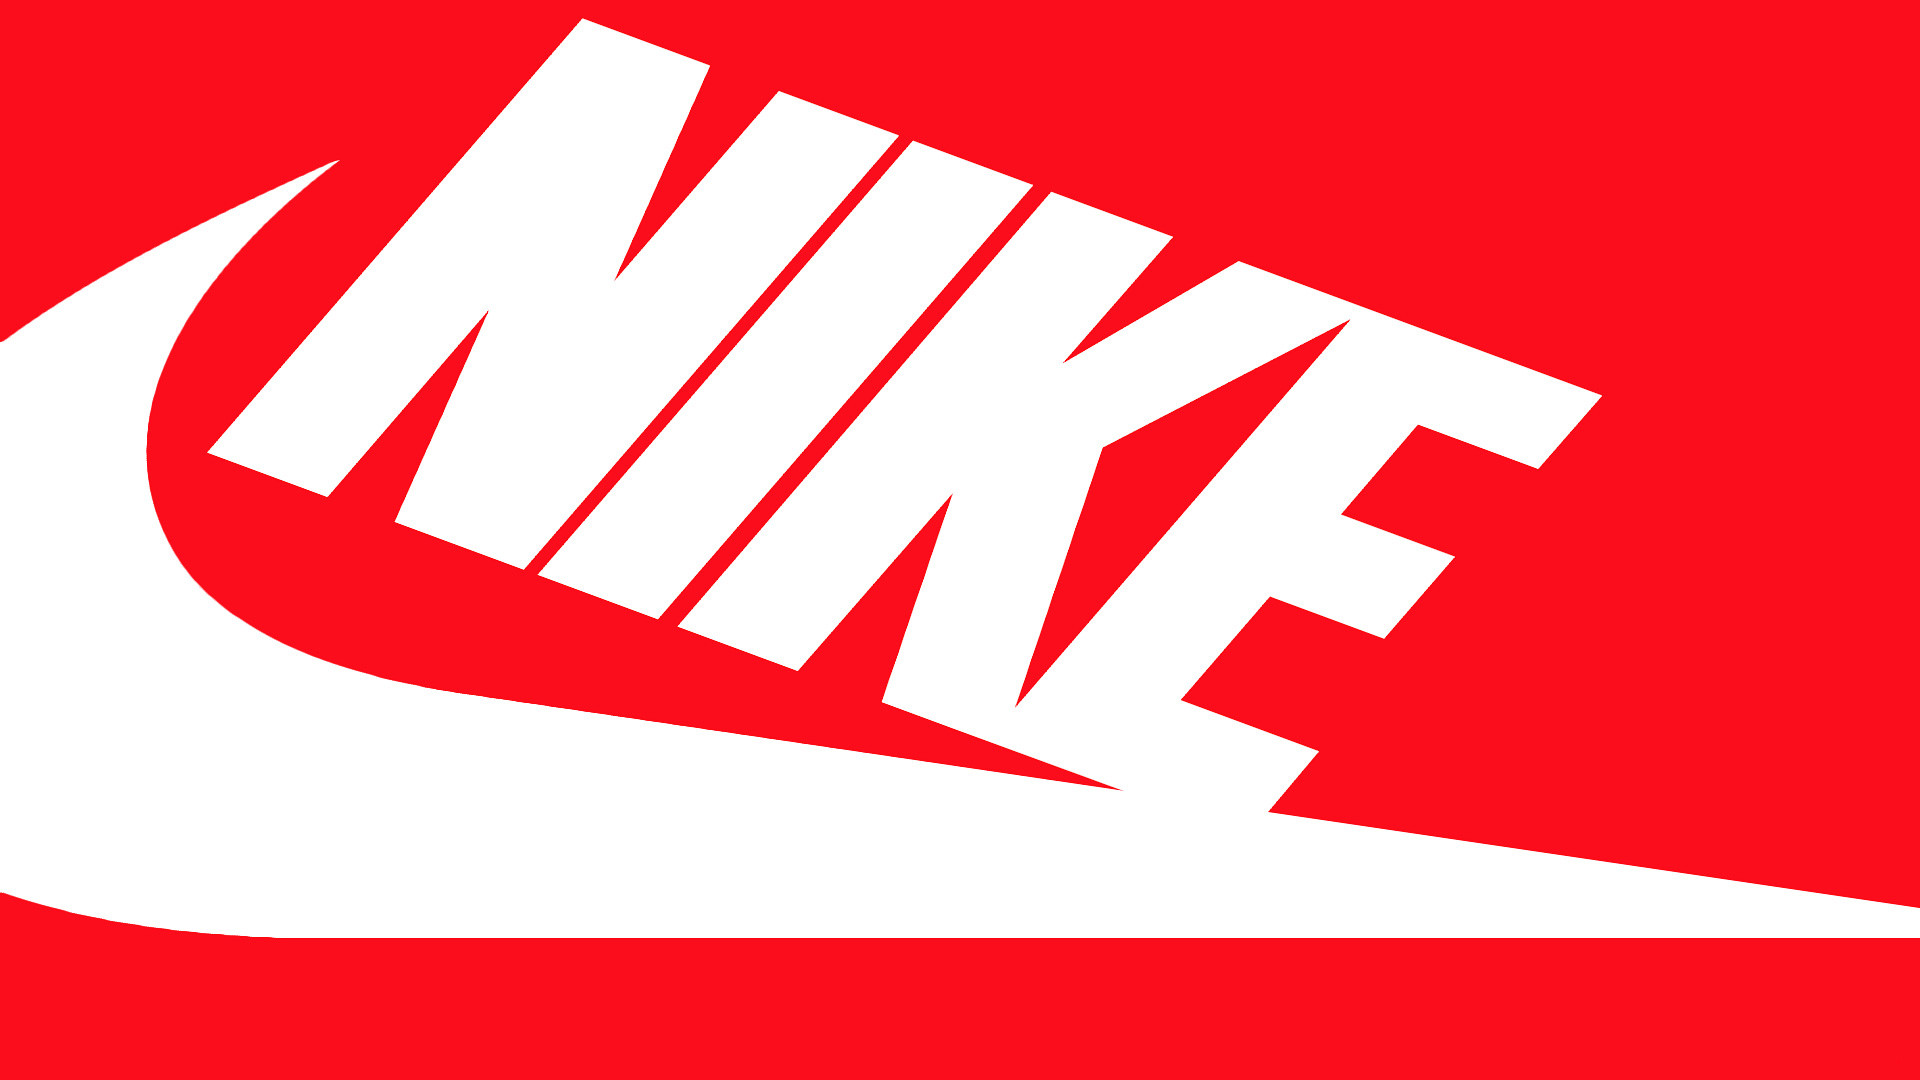 Nike images free download